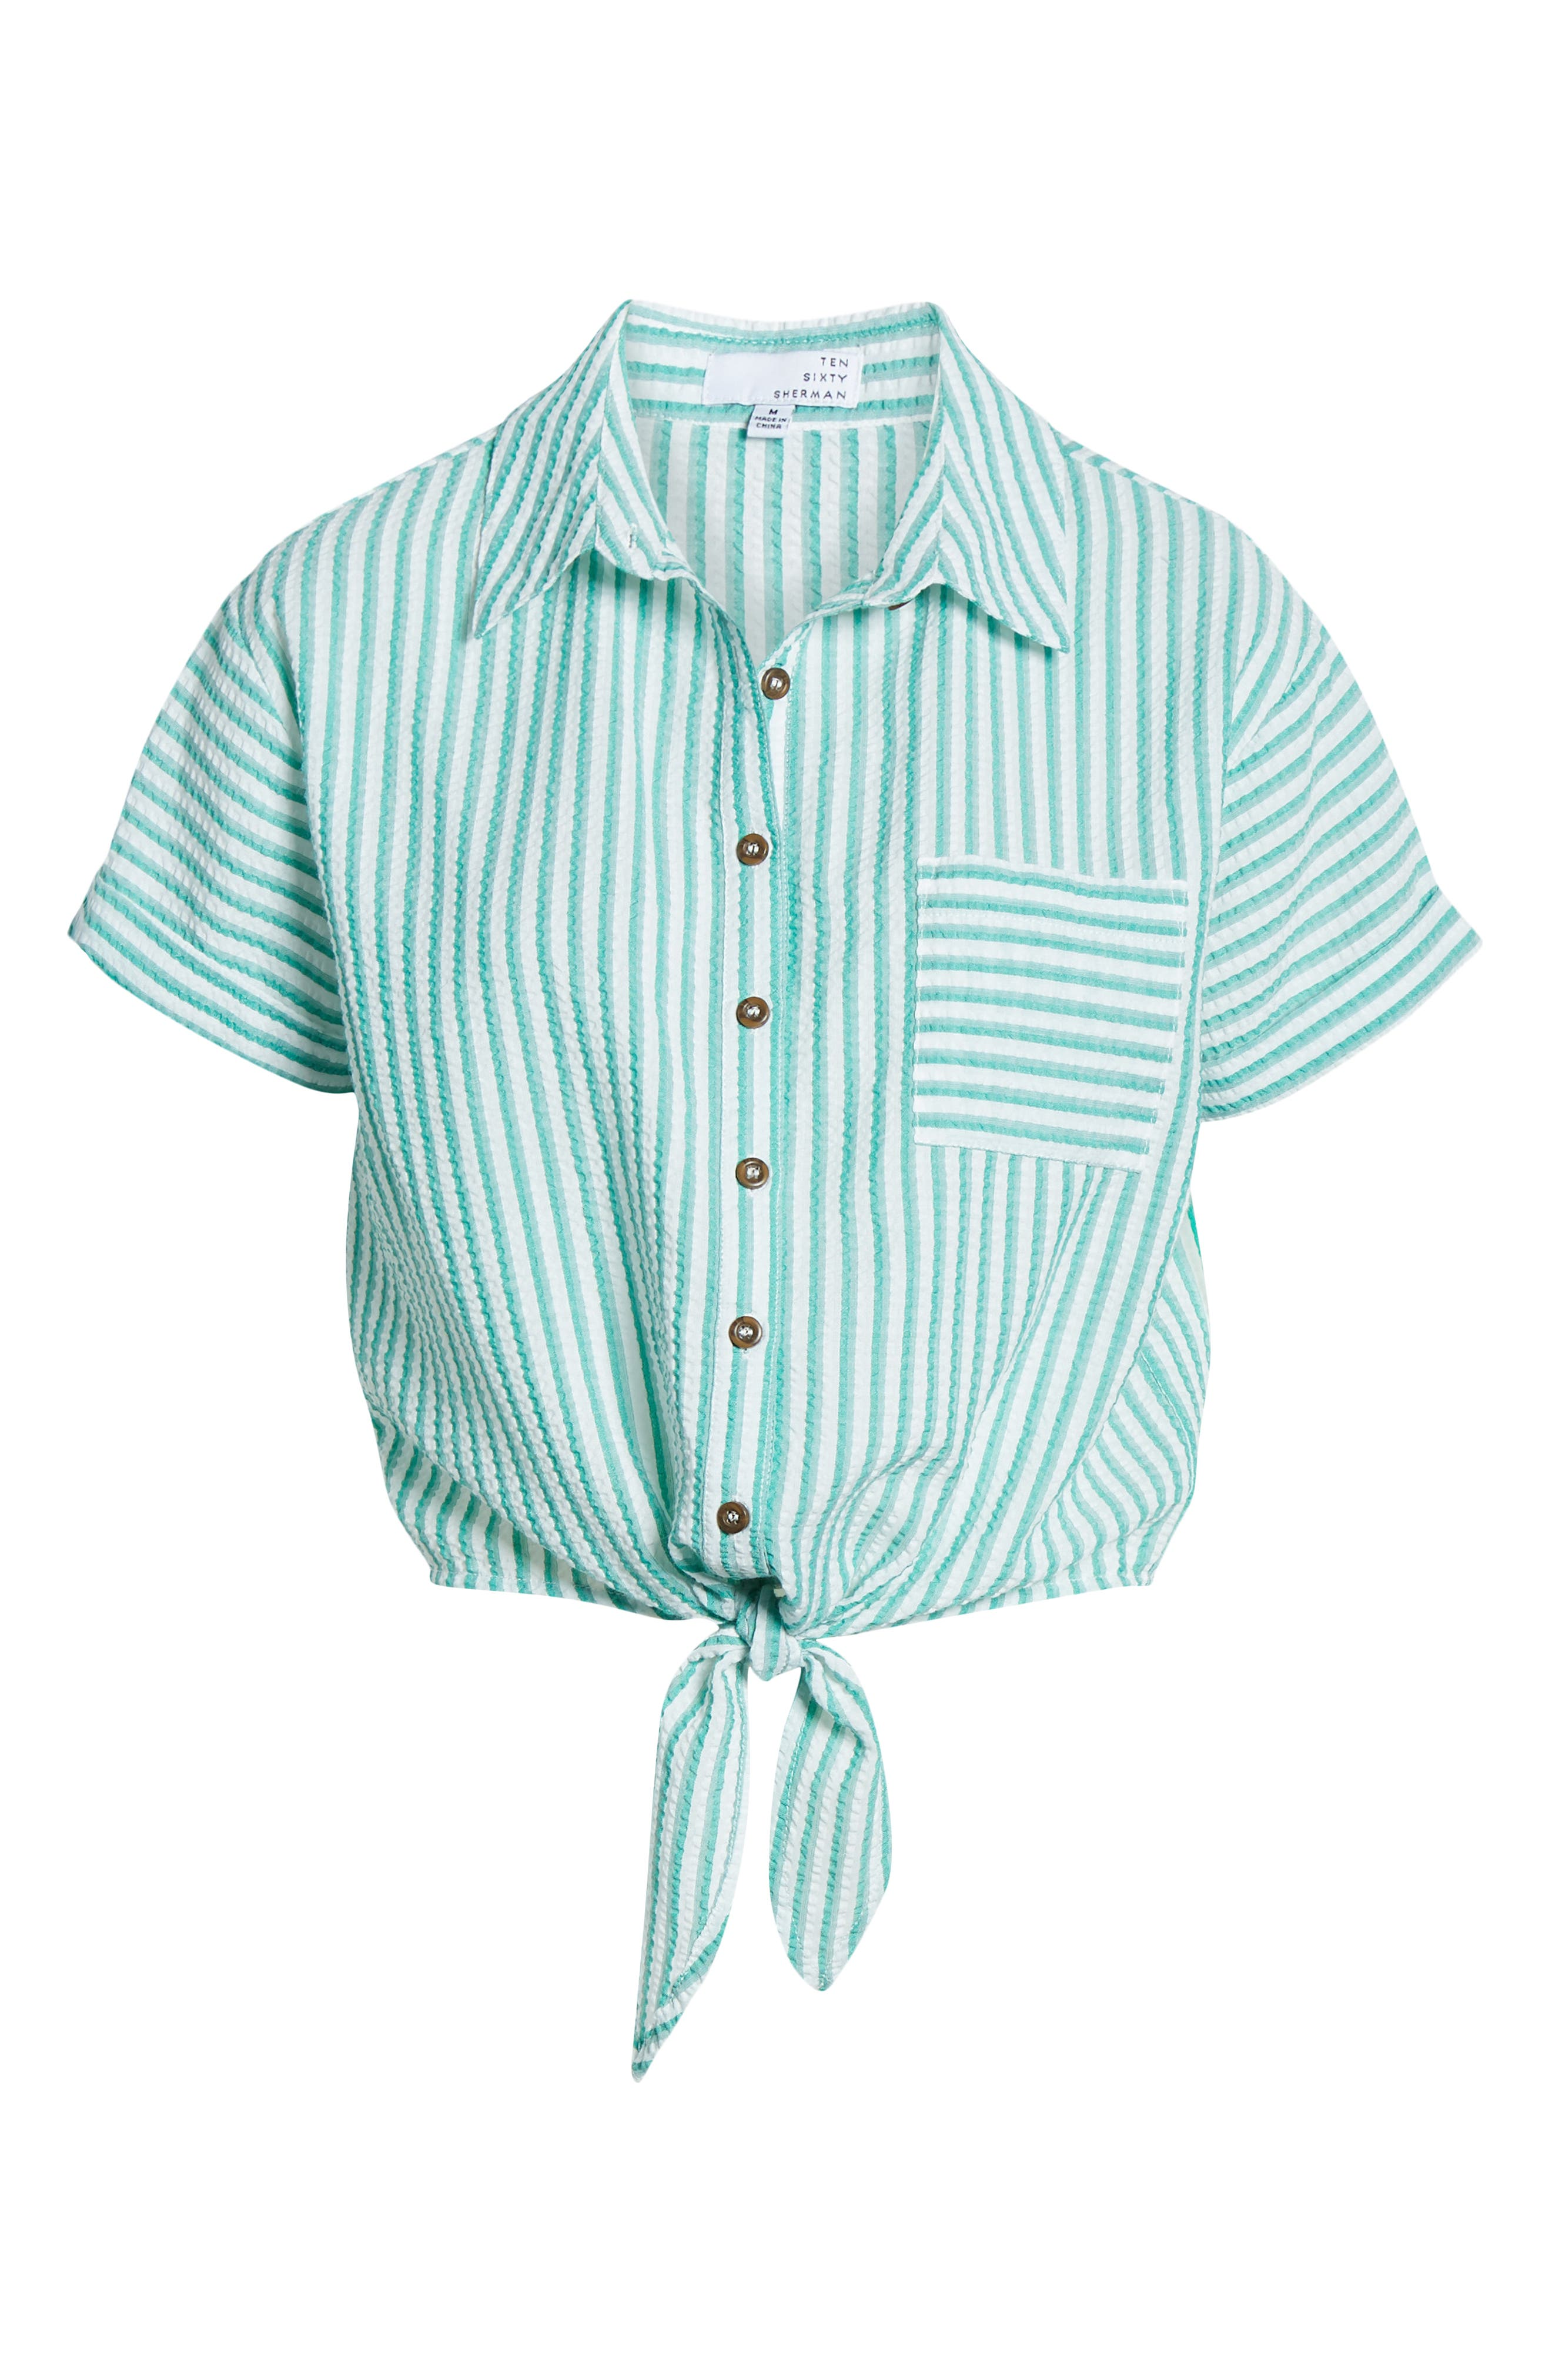 TEN SIXTY SHERMAN, Tie Front Seersucker Shirt, Alternate thumbnail 6, color, GREEN WING